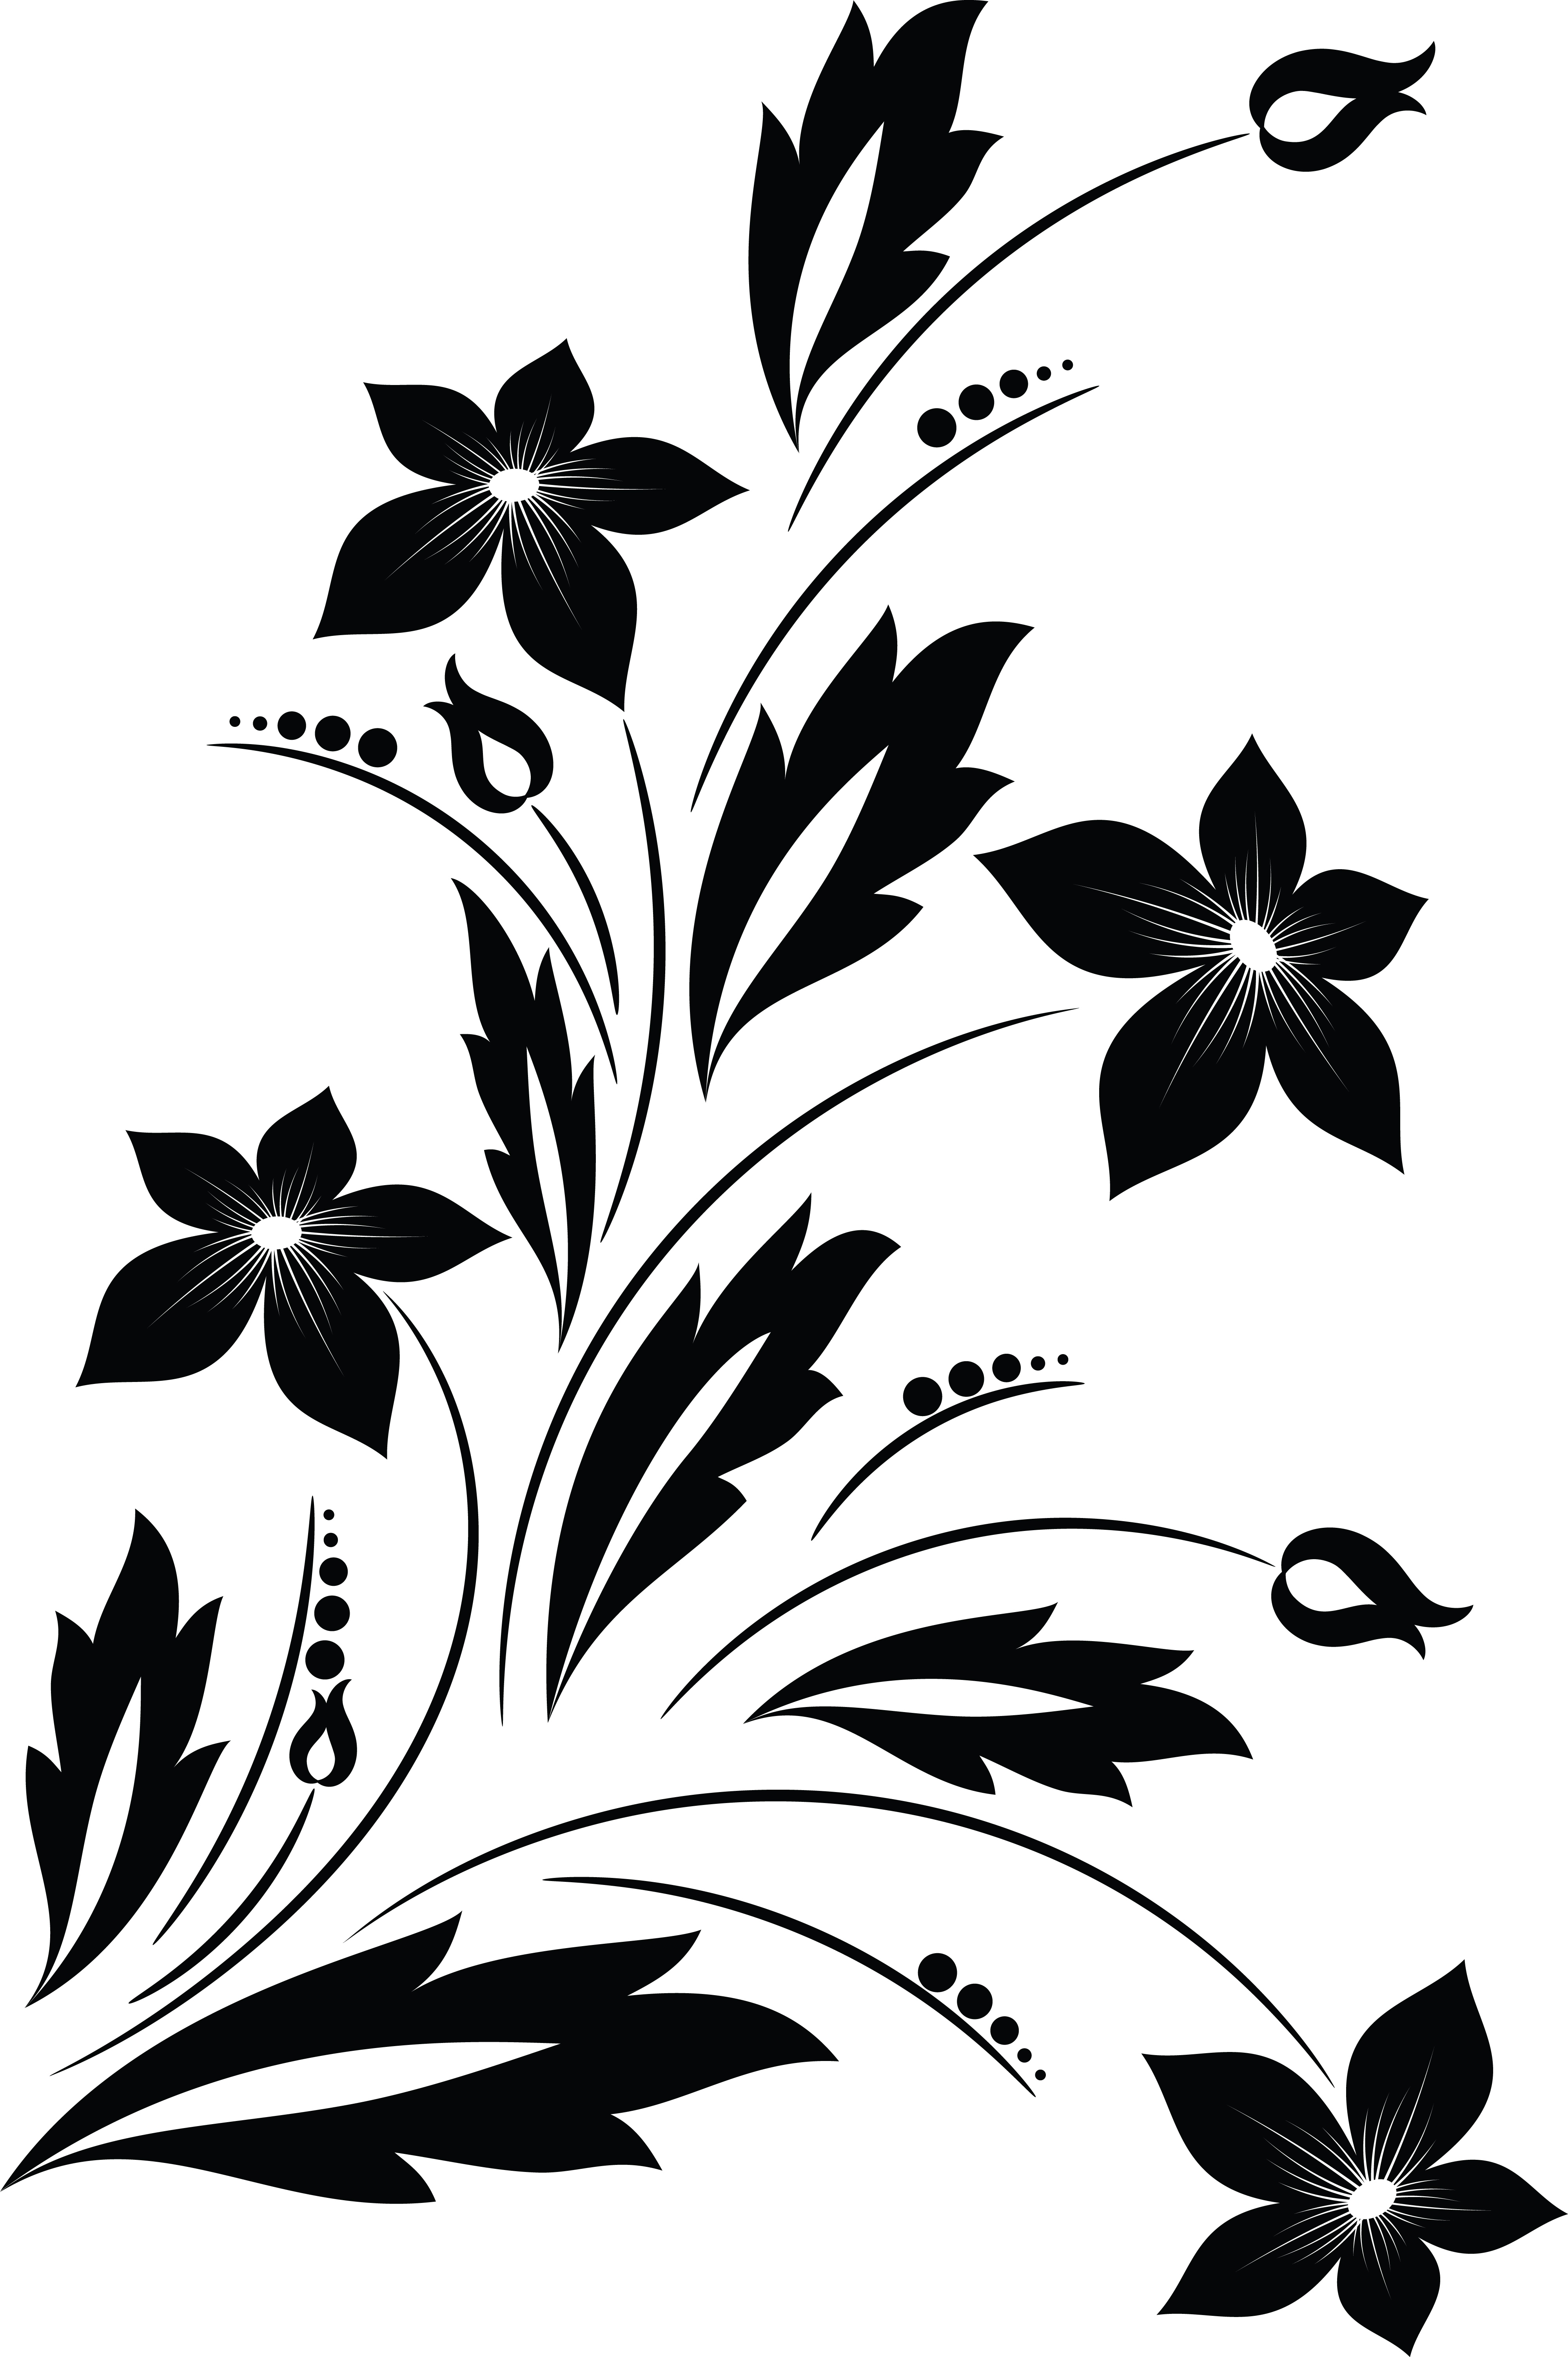 free clipart of a black and white floral vine design element rh free clipartof com design clipart design clipart black and white